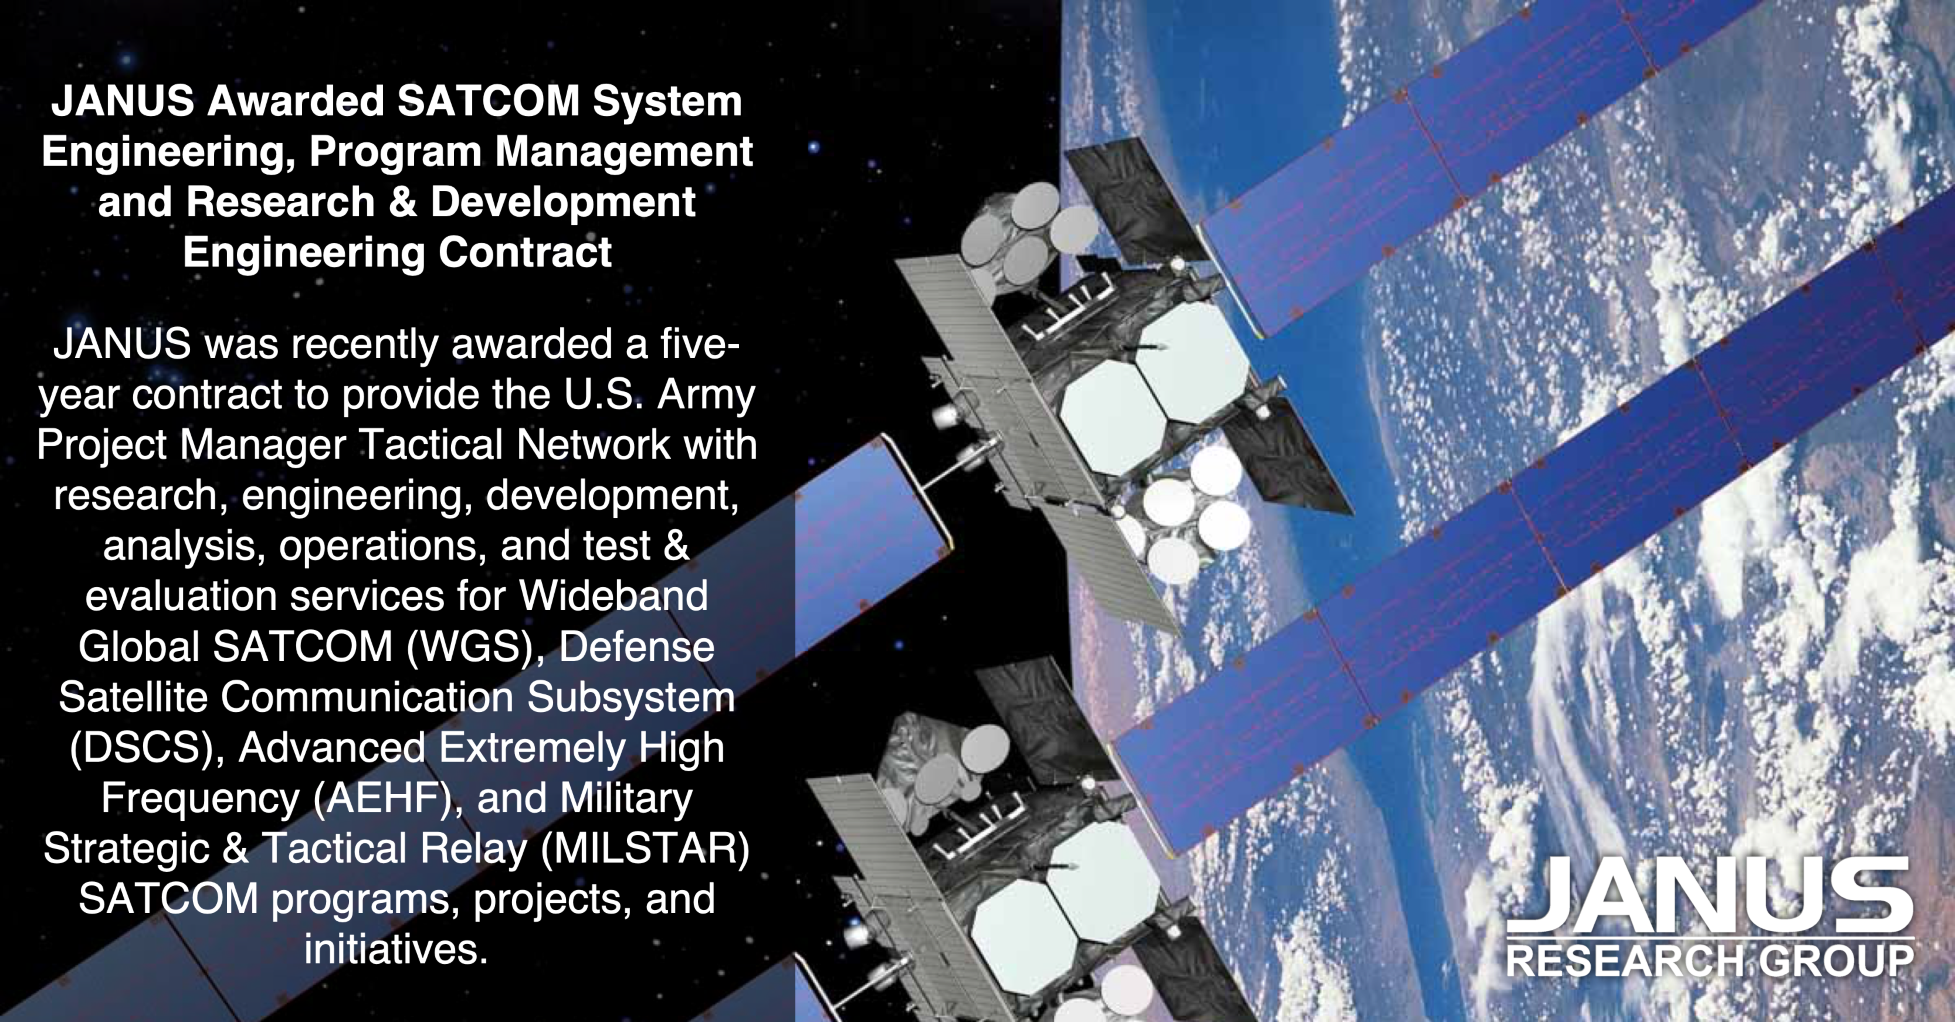 SATCOM Picture | JANUS Research Group